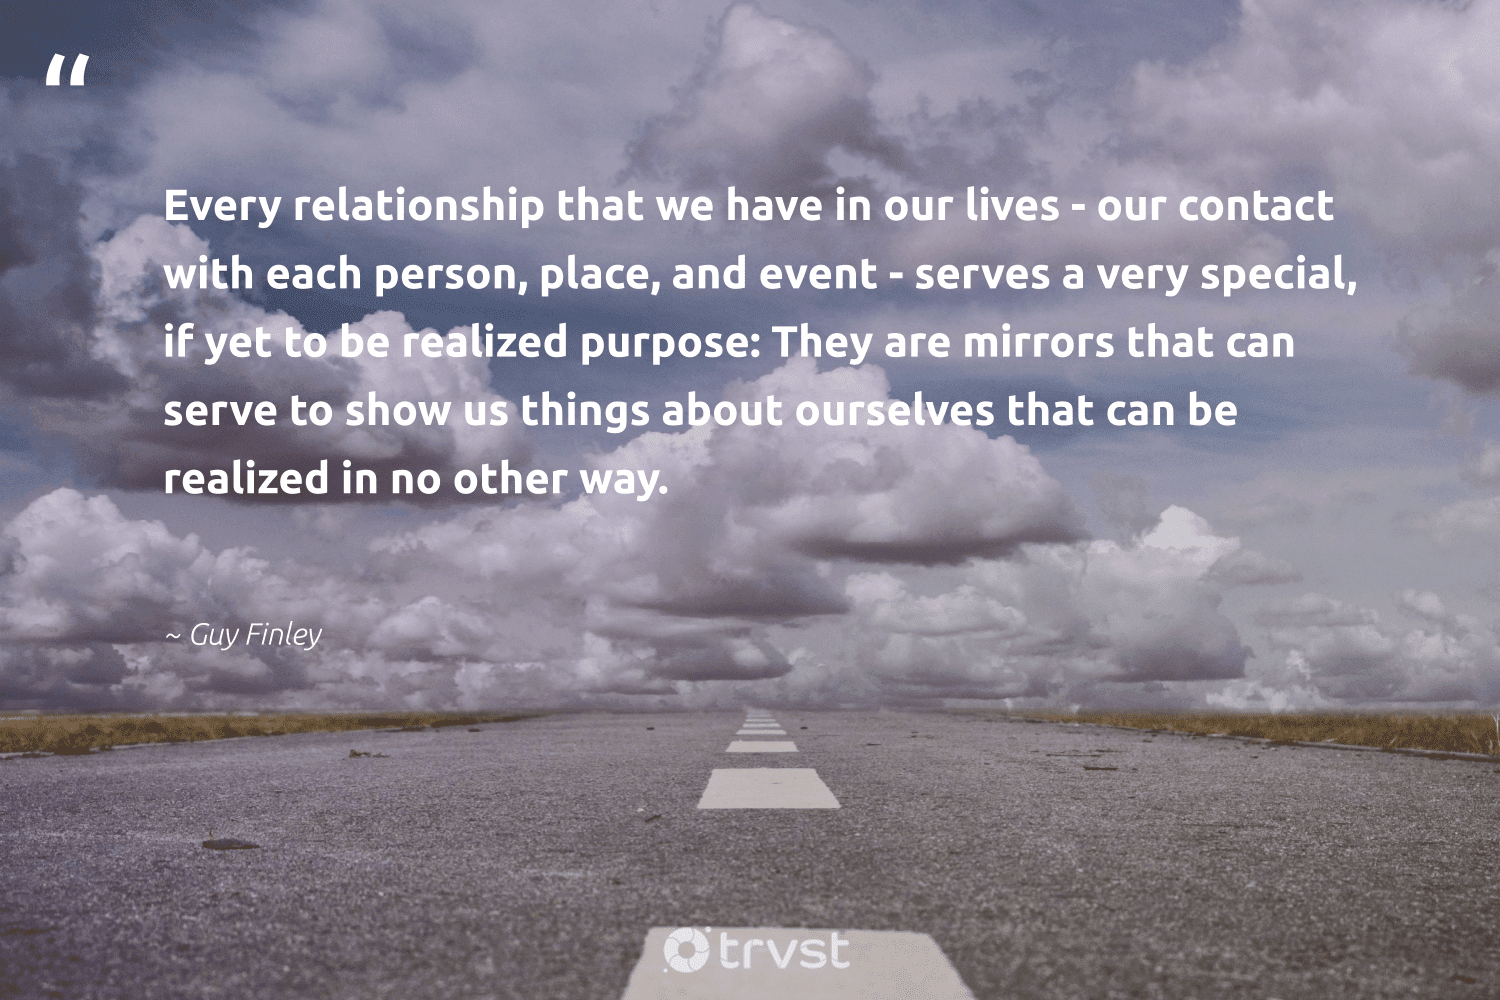 """""""Every relationship that we have in our lives - our contact with each person, place, and event - serves a very special, if yet to be realized purpose: They are mirrors that can serve to show us things about ourselves that can be realized in no other way.""""  - Guy Finley #trvst #quotes #mindset #collectiveaction #nevergiveup #thinkgreen #changemakers #dosomething #begreat #dogood #togetherwecan #planetearthfirst"""